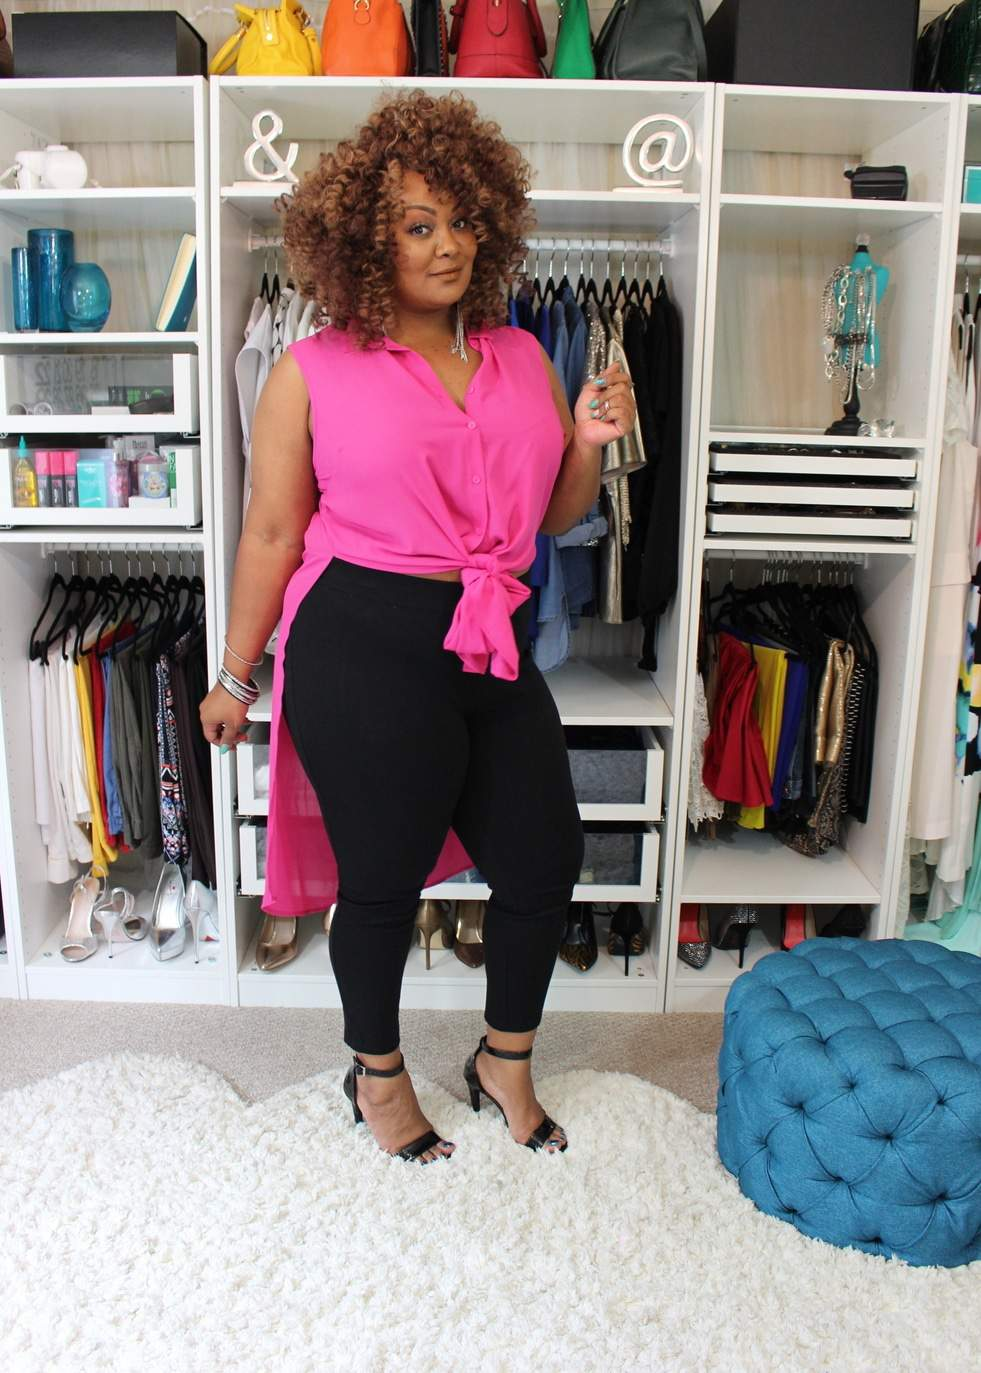 My Style: Taking a Whirl in Boutique+ from JCPenney